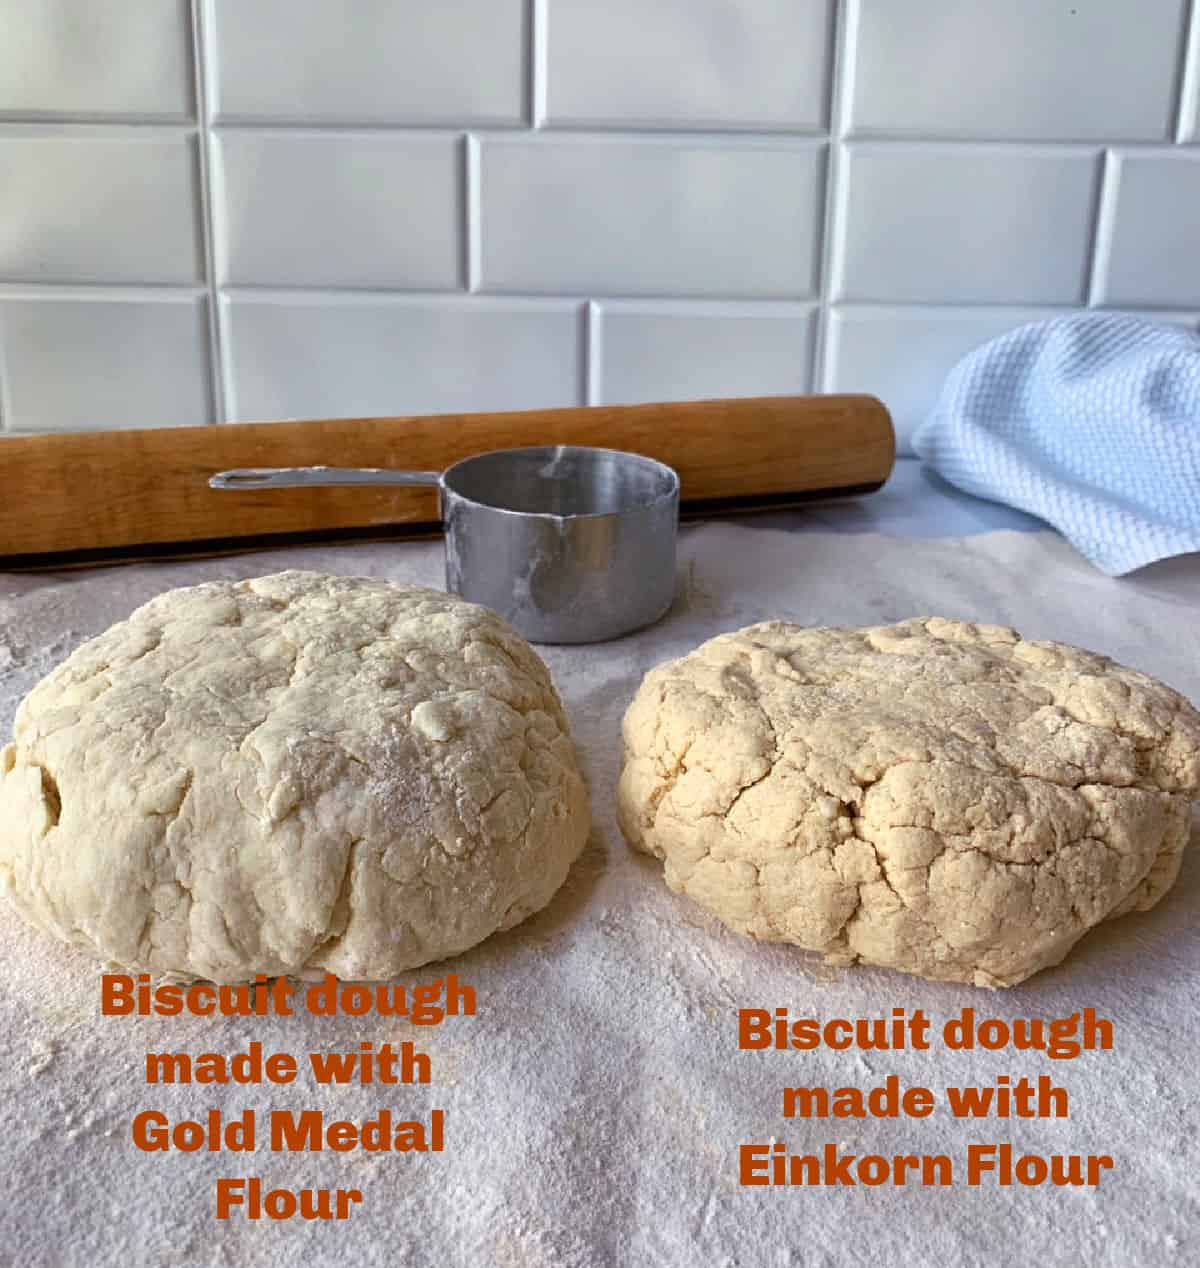 Biscuit dough made with two types of flour.